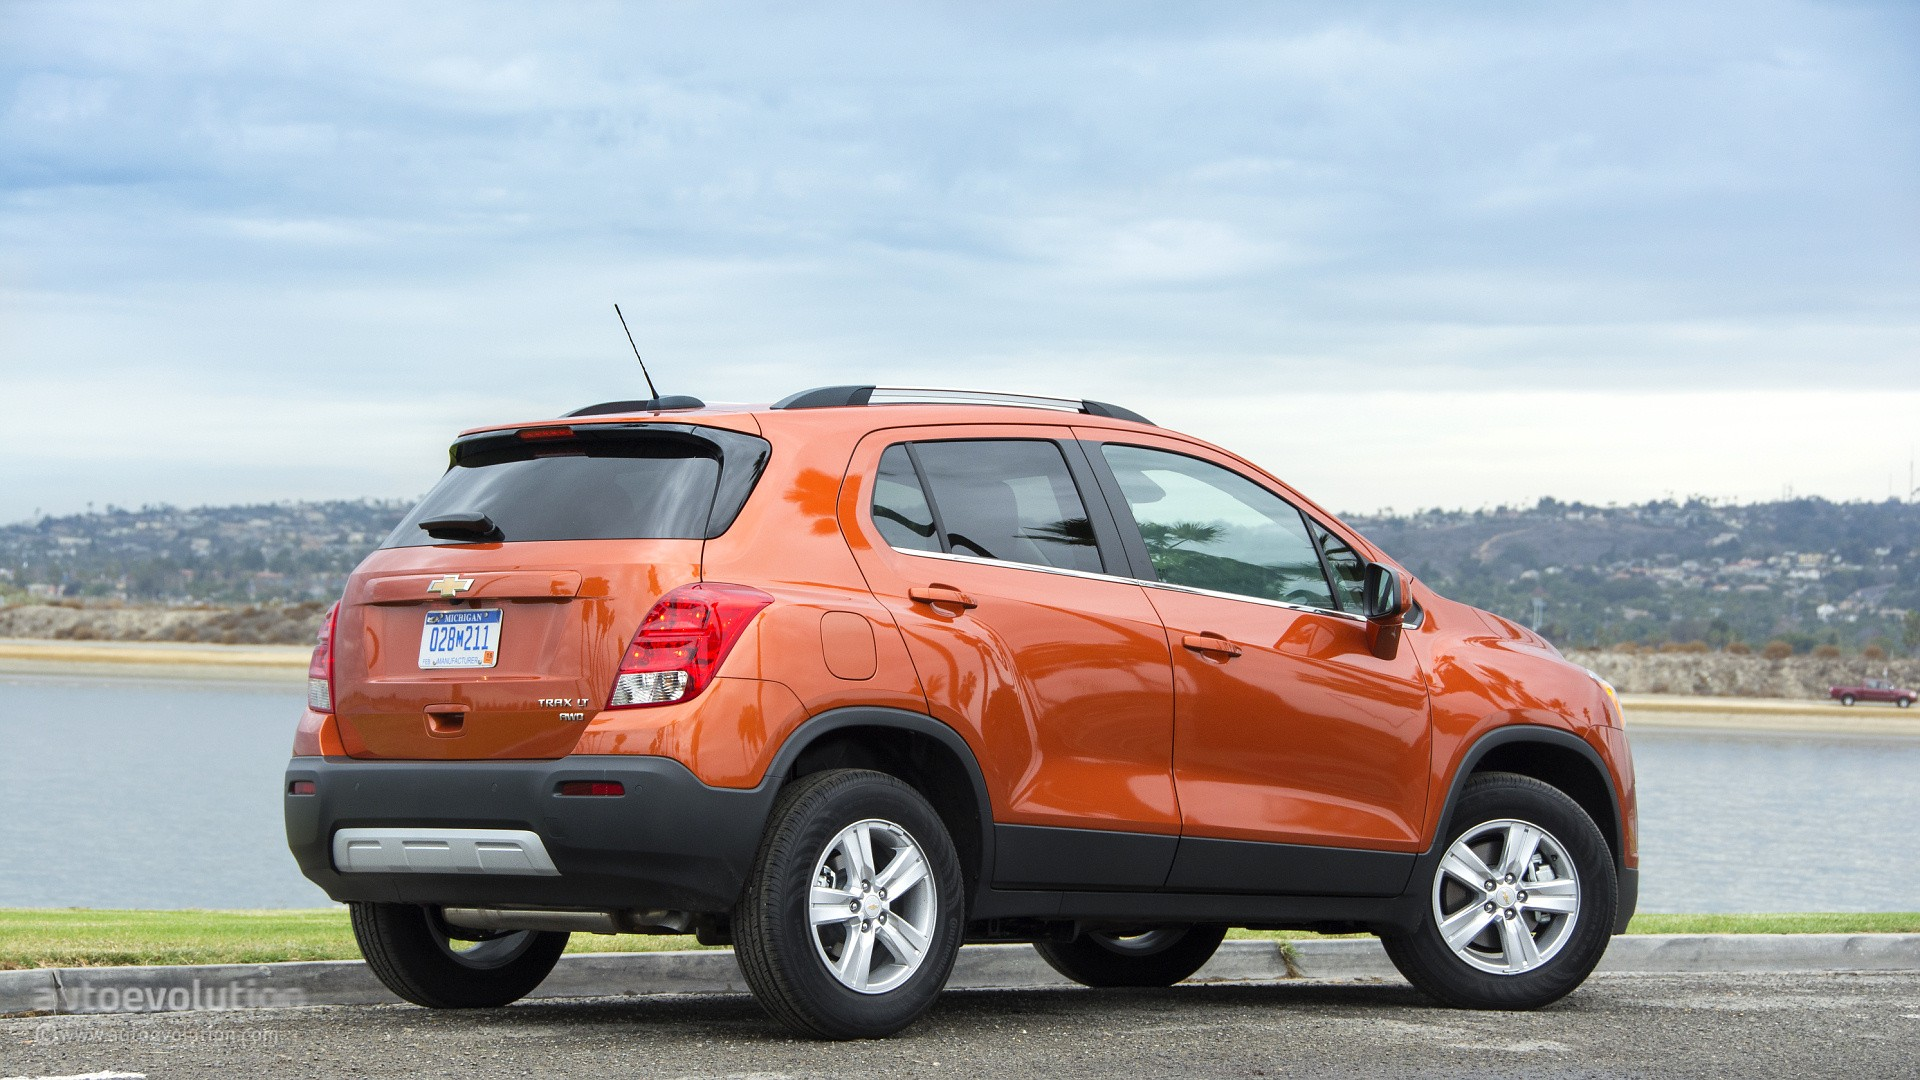 2015 chevrolet trax review autoevolution. Black Bedroom Furniture Sets. Home Design Ideas